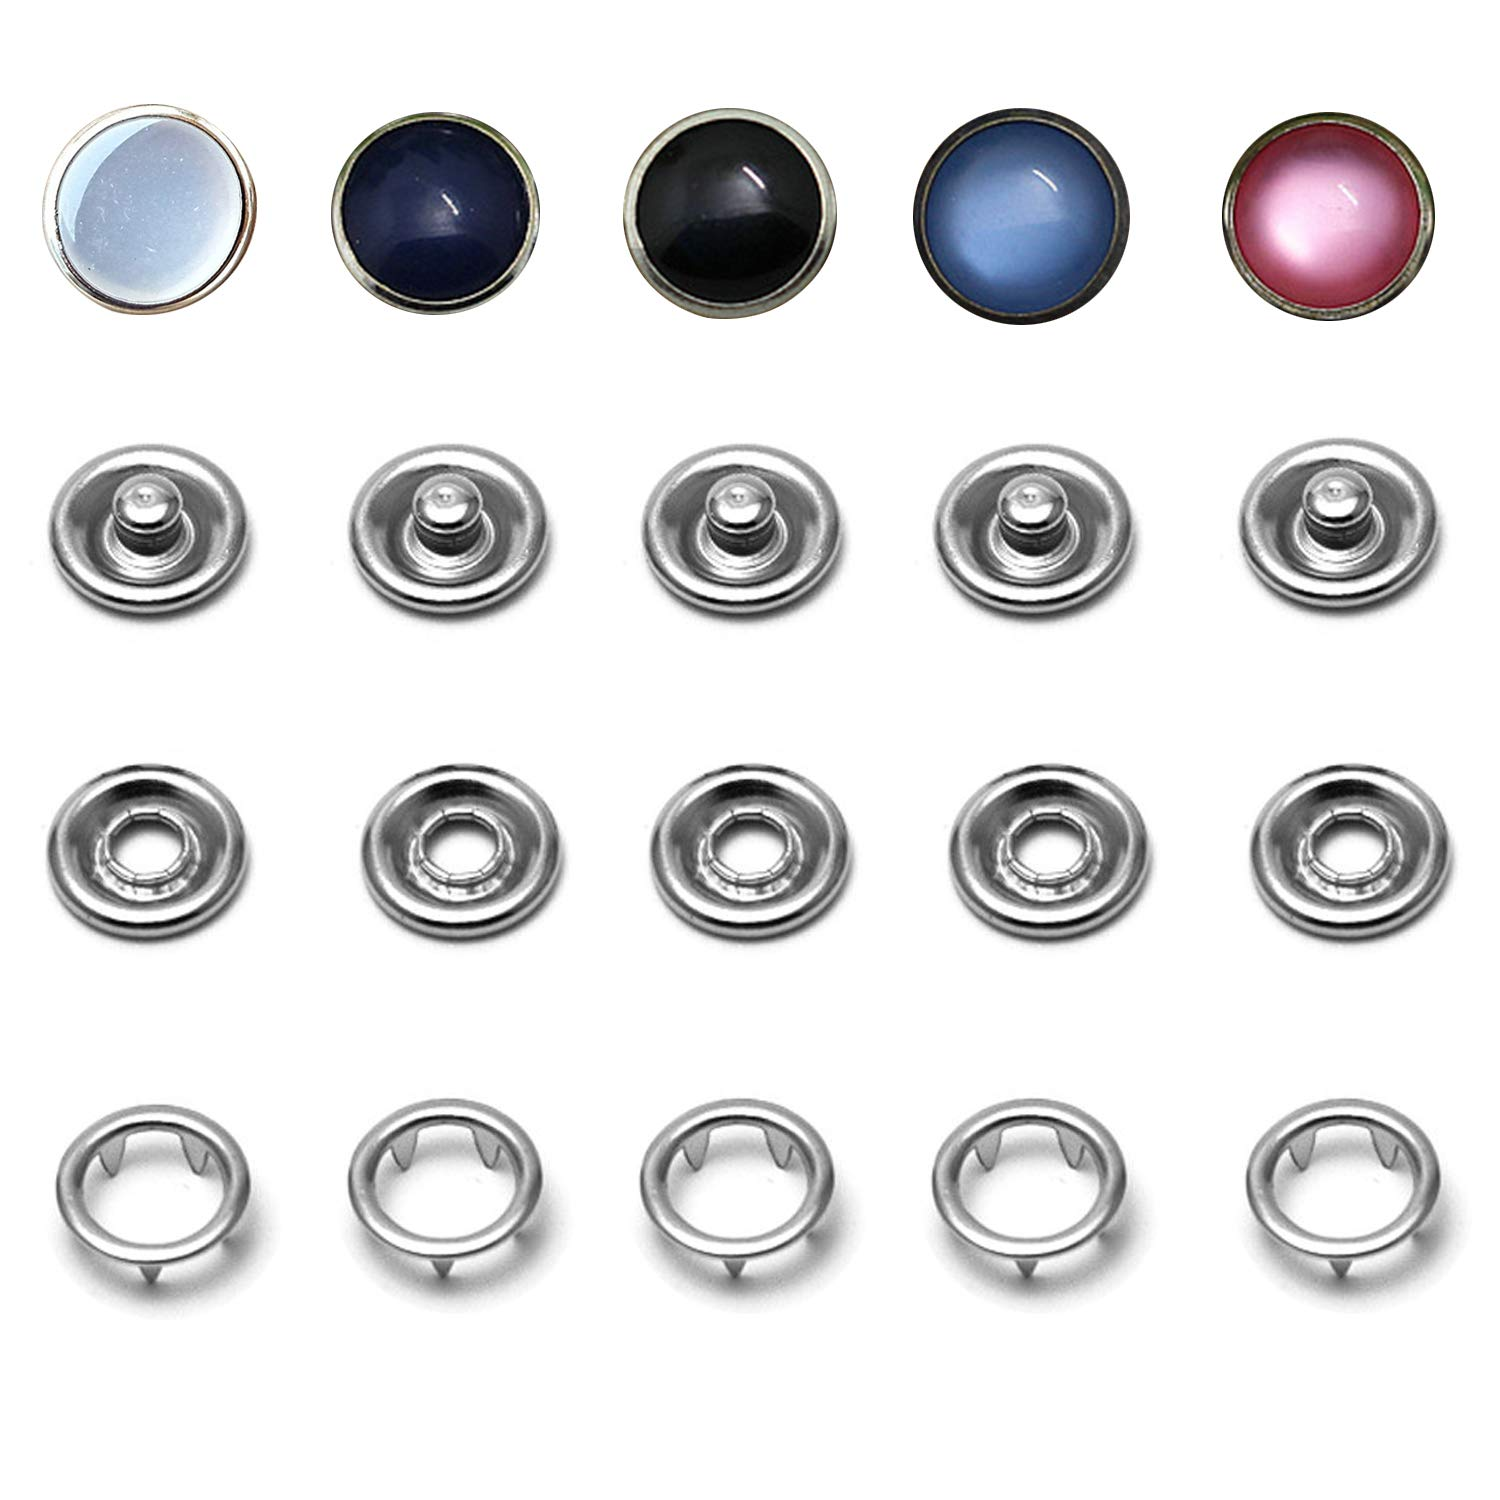 50 Sets Snap Fastener Kit, 16L/10mm Classic Pearl Prong Ring Snaps for Western Shirt Clothes Popper Studs with Clear Storage Box (5 Color x 10 Sets) by Ouhong